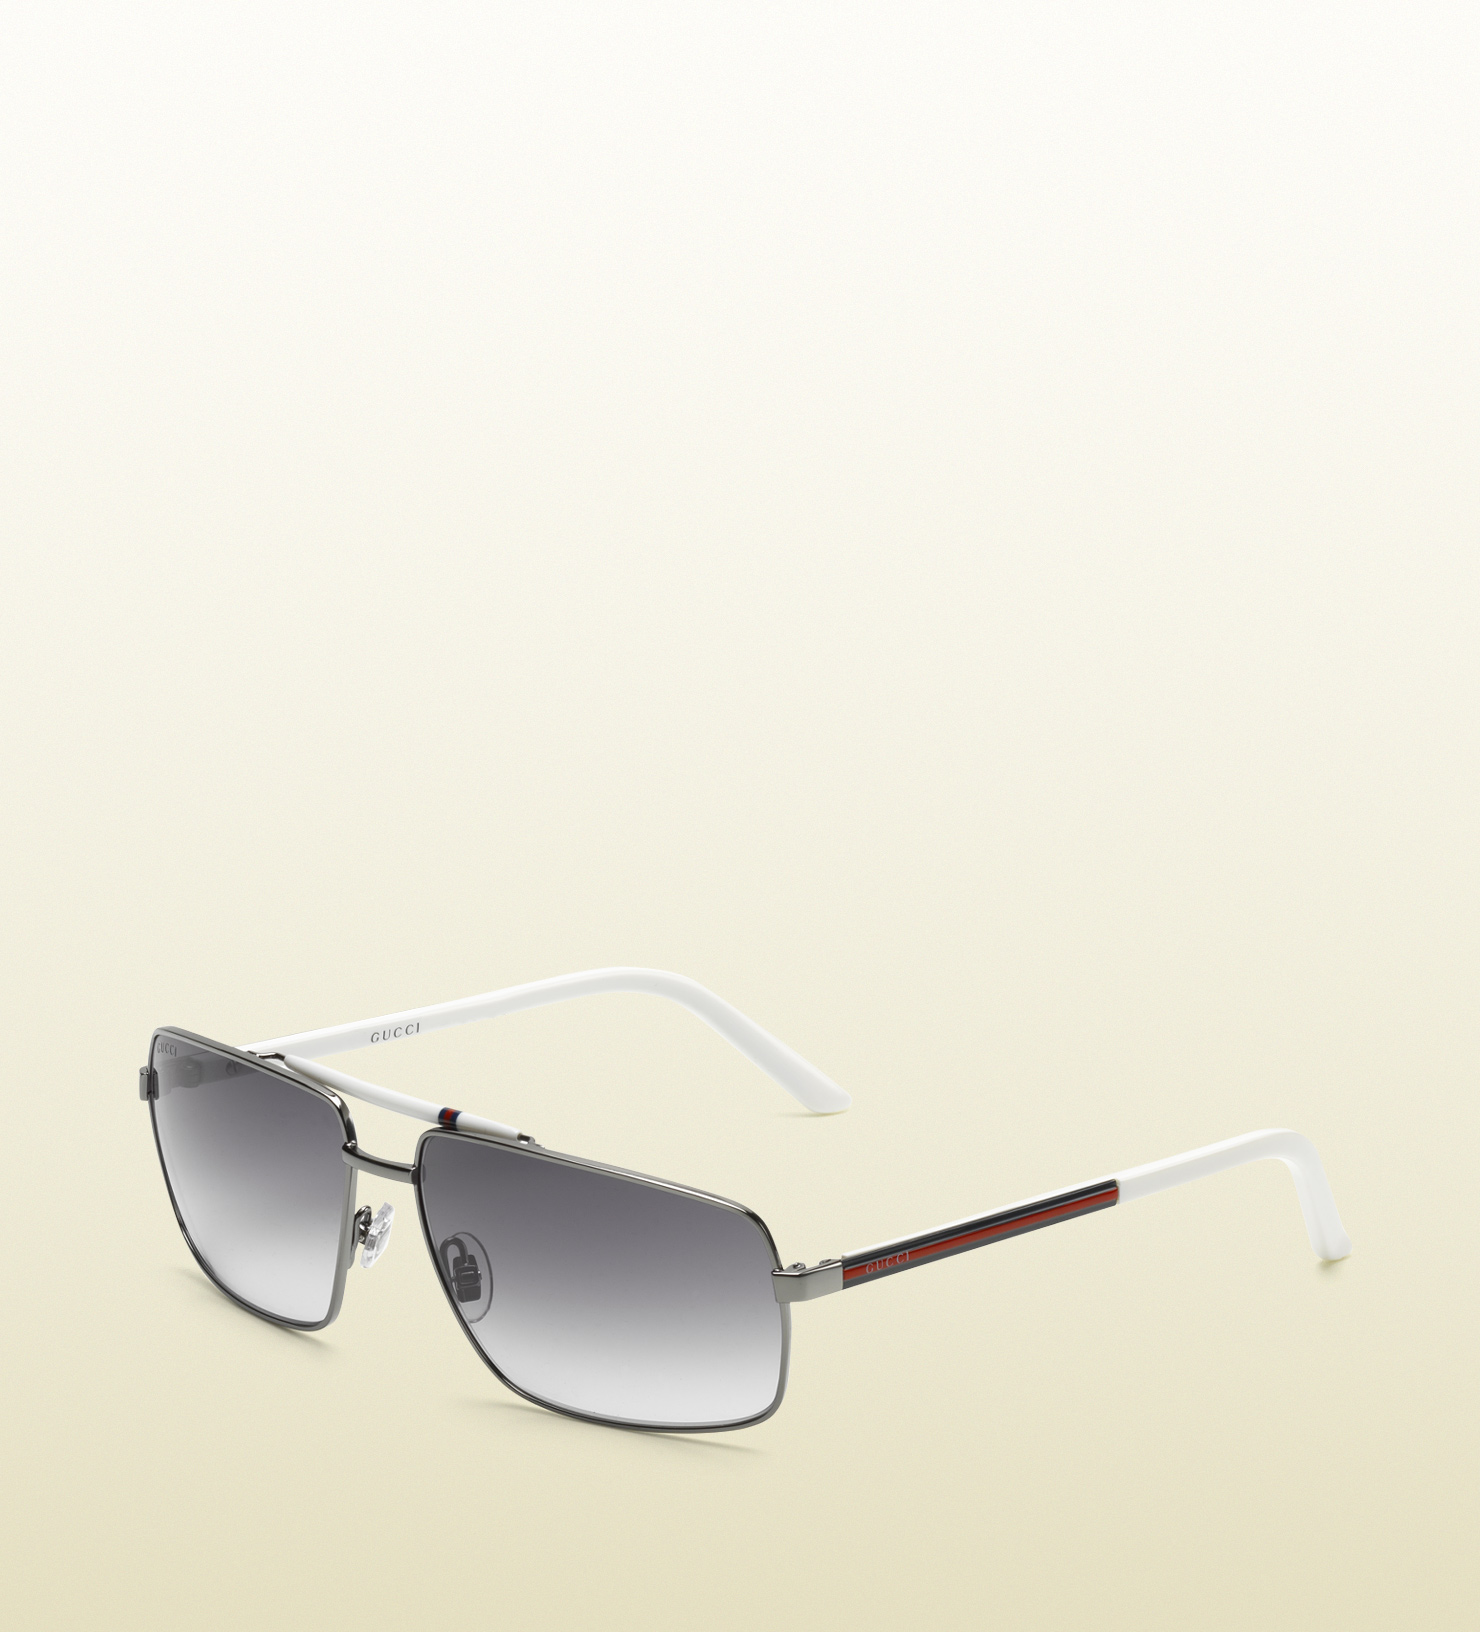 e0a2df7c09b Lyst - Gucci Navigator Sunglasses with Gucci Logo On Temples in ...